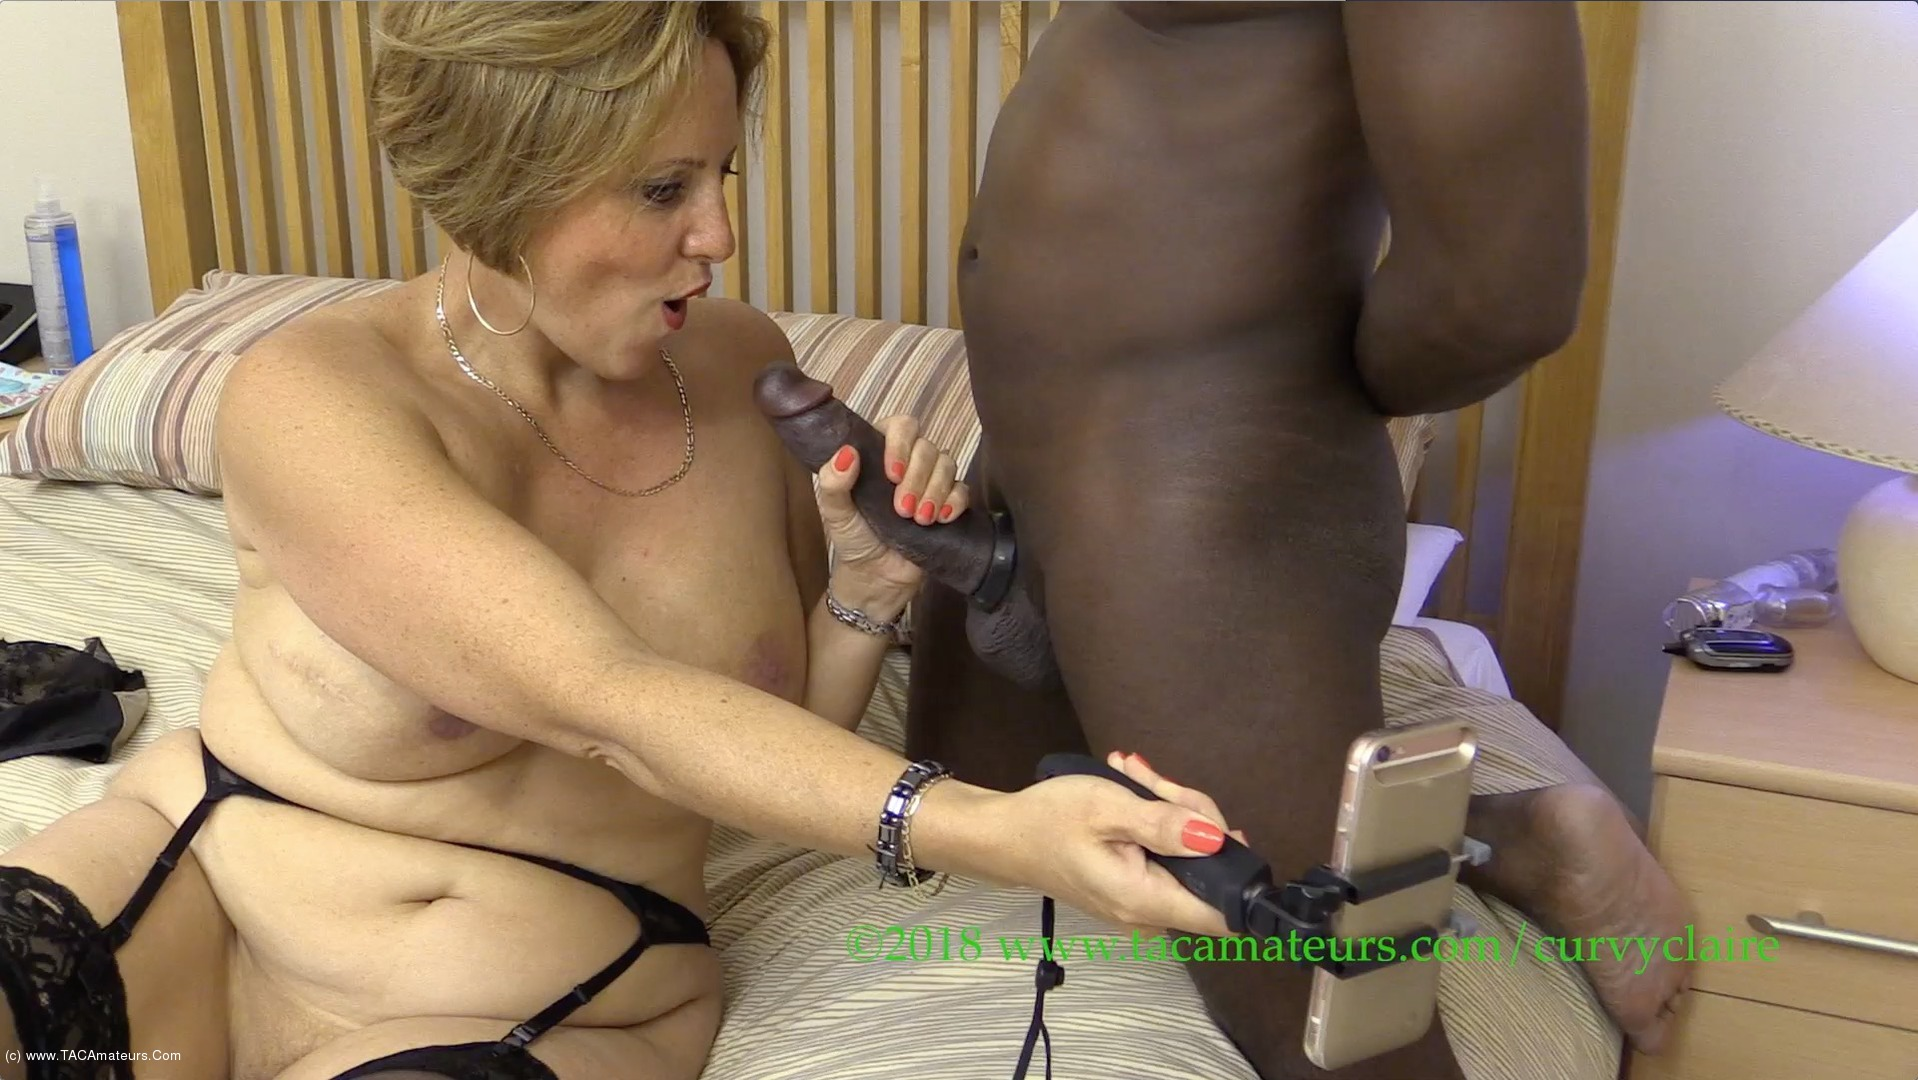 CurvyClaire - Dial A Dicks Huge 10 Inch Cock Pt2 scene 3